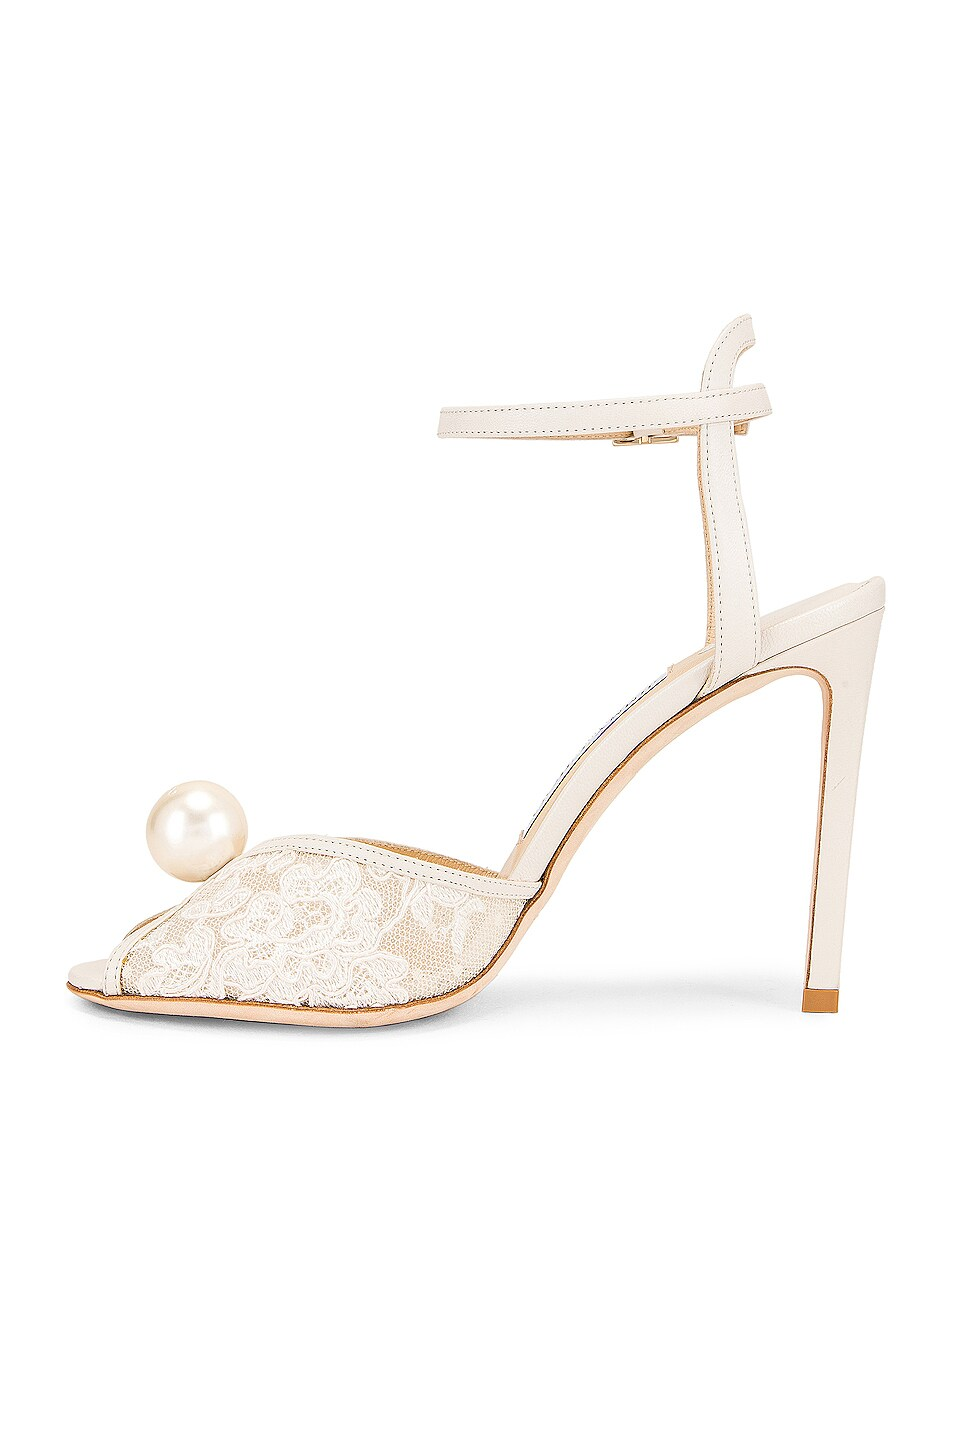 Image 5 of Jimmy Choo Sacora 100 Floral Lace with Pearl Sandal in White